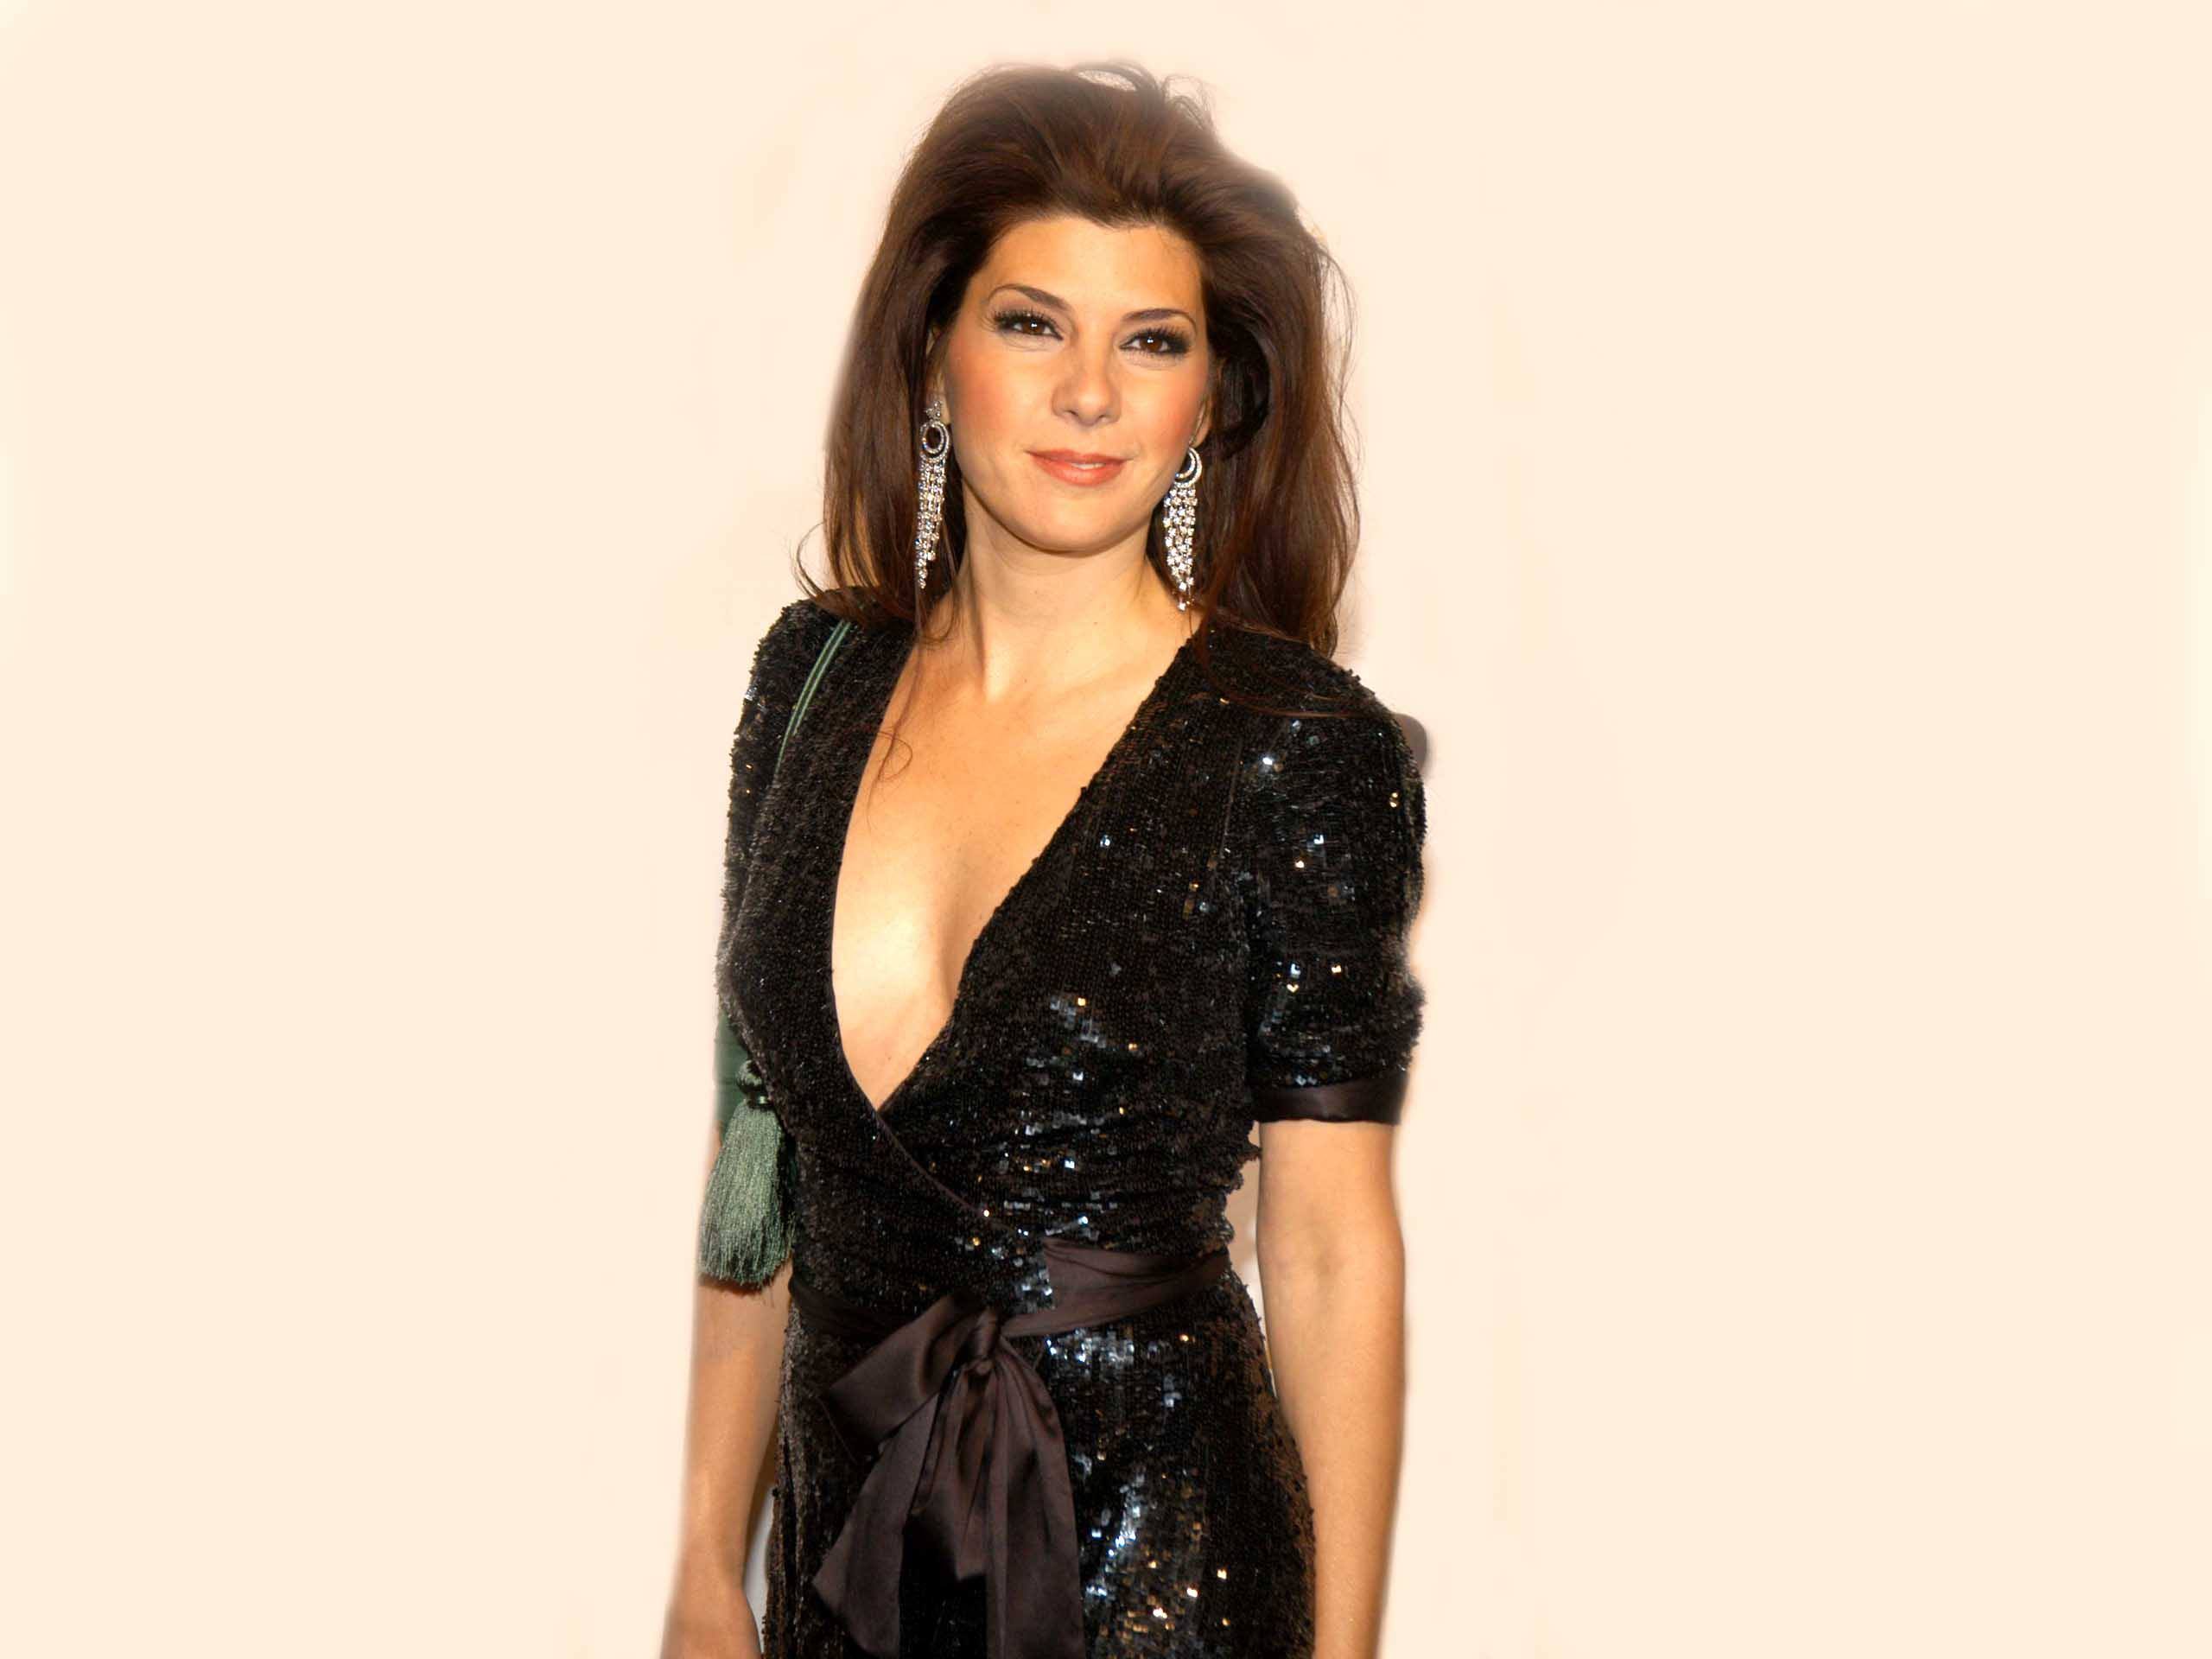 Marisa Tomei Wallpapers High Quality Download 2560x1920